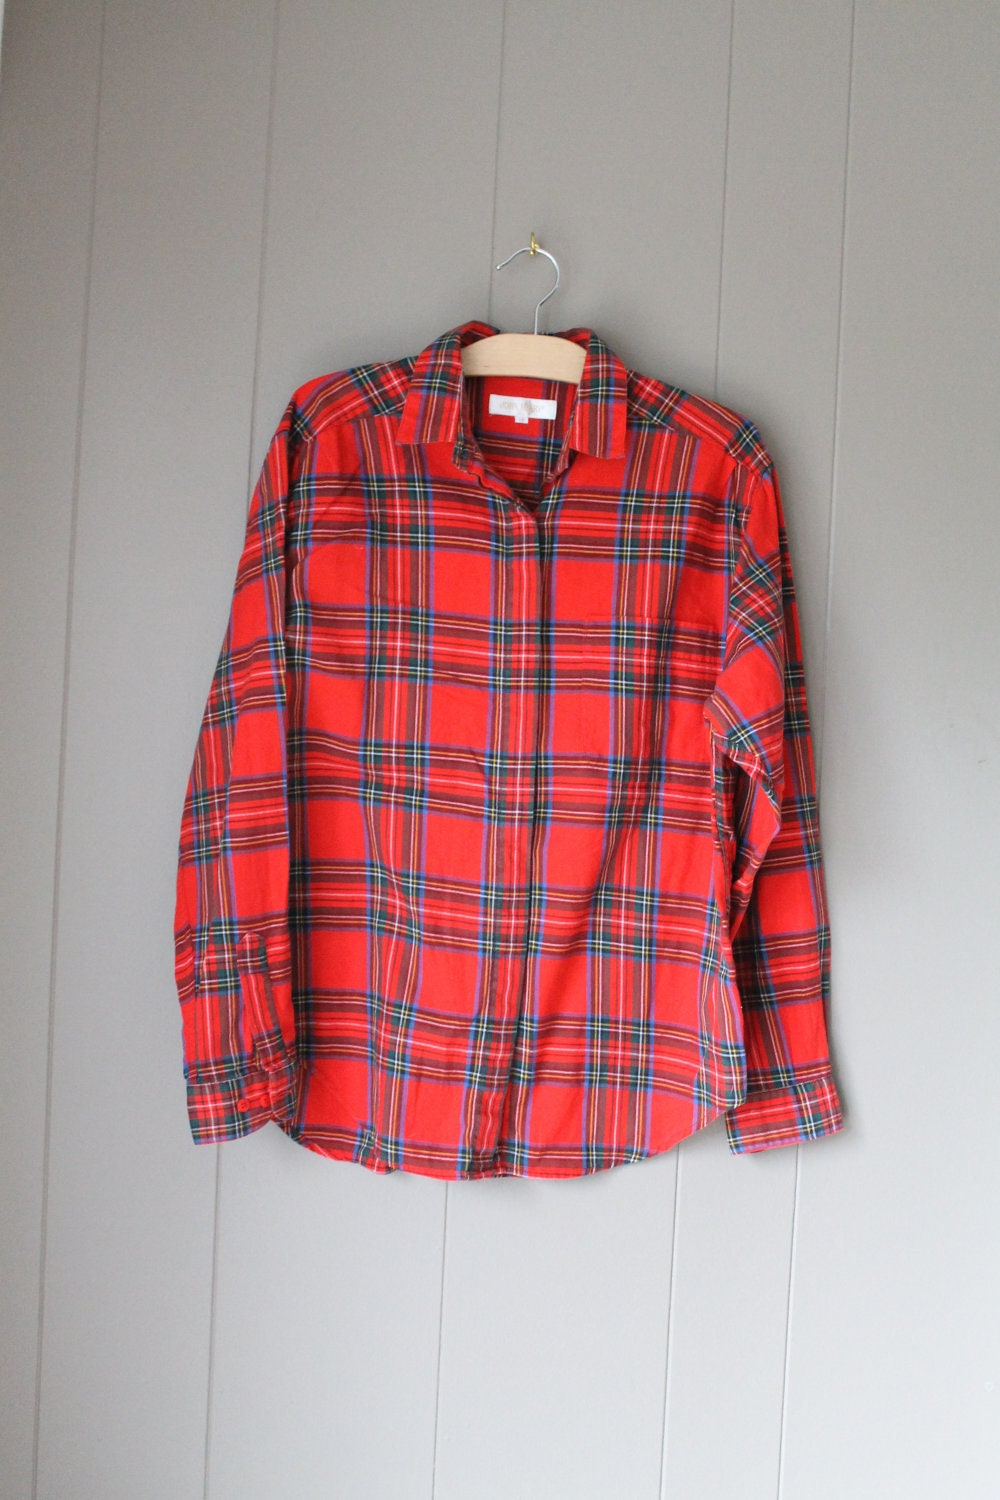 red plaid shirt cotton flannel shirt tartan plaid by liinaloom